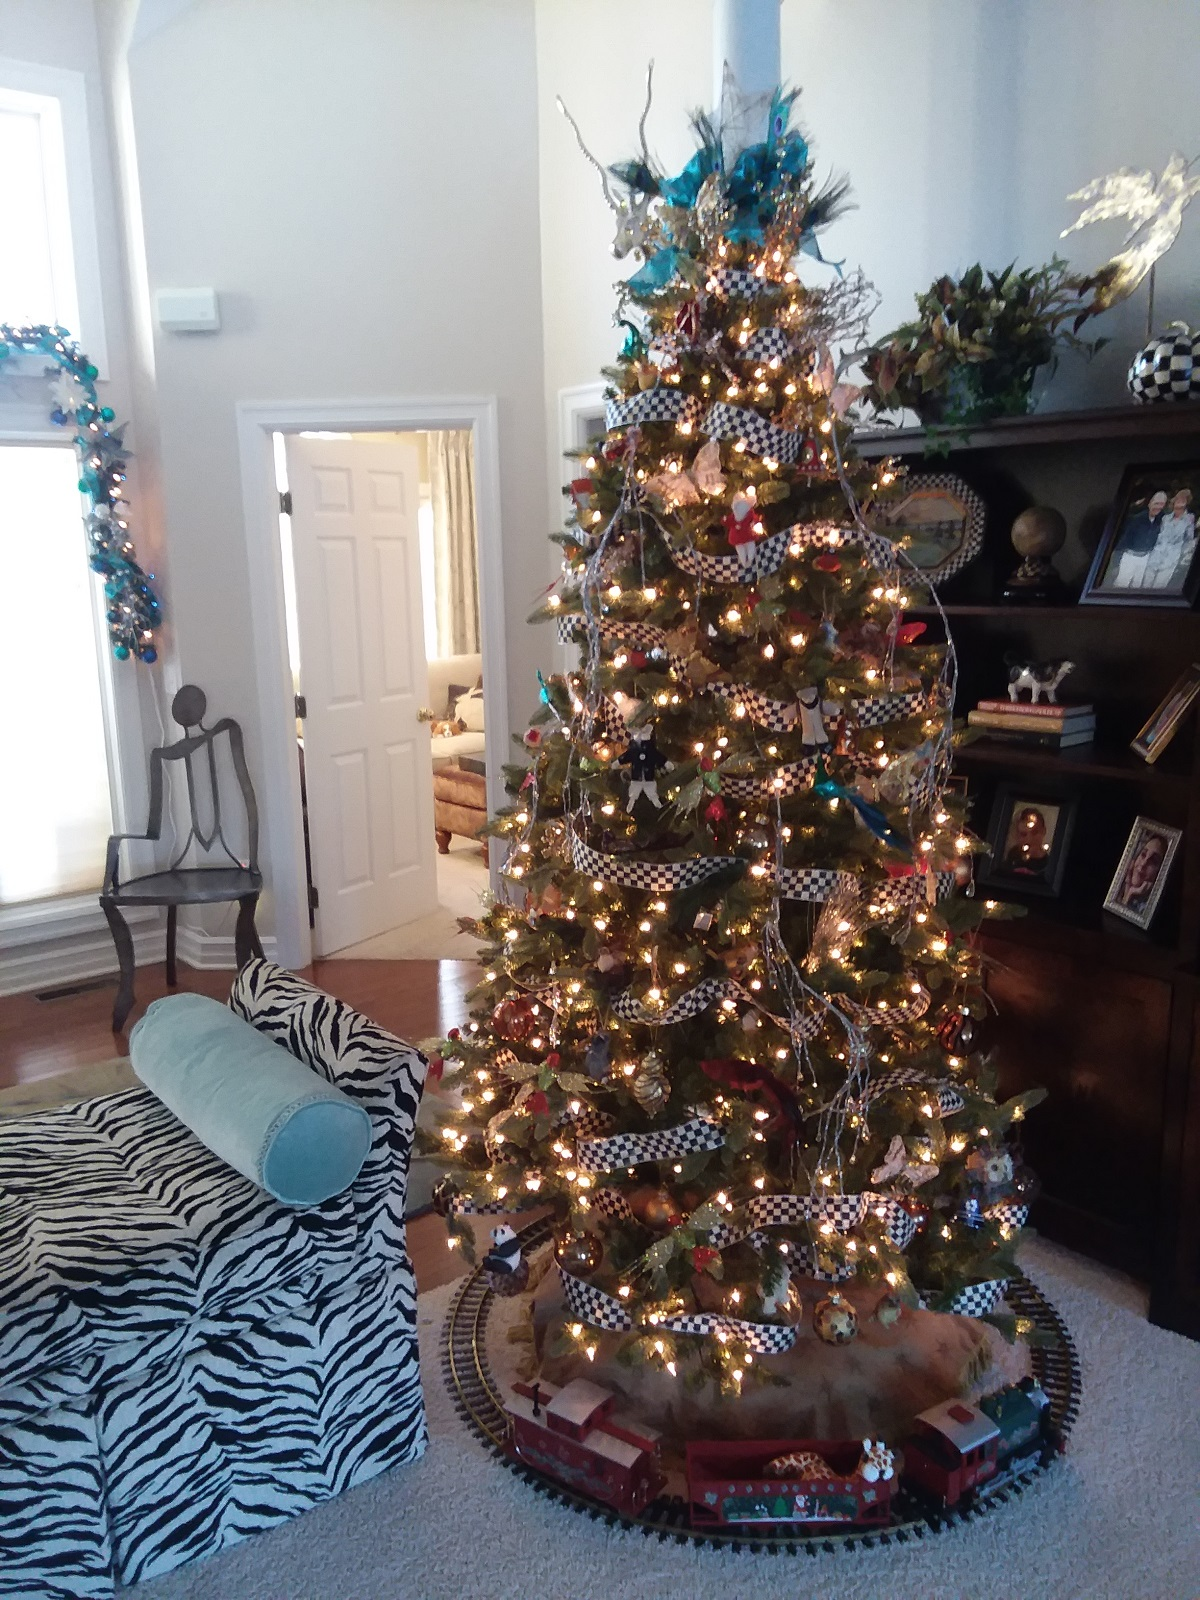 Pamela and Ray Witte downsized to a ranch-style home a couple years ago. Here is how it looks decorated for Christmas.